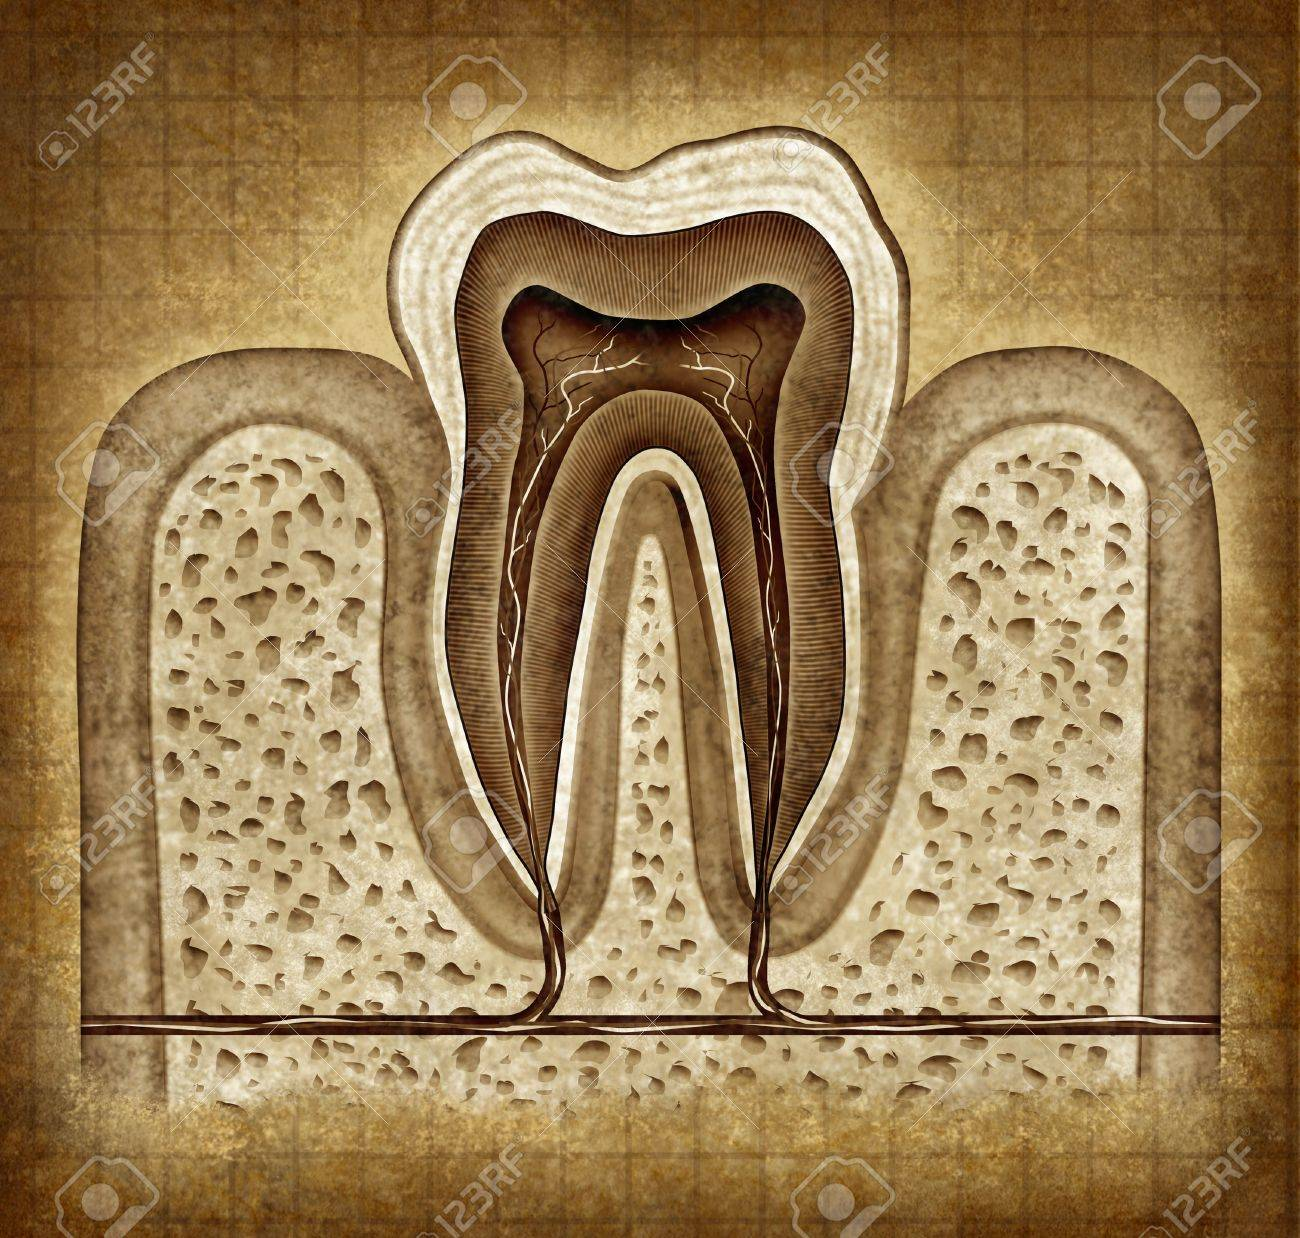 Tooth inner anatomy old grunge parchment diagram Stock Photo - 11995656